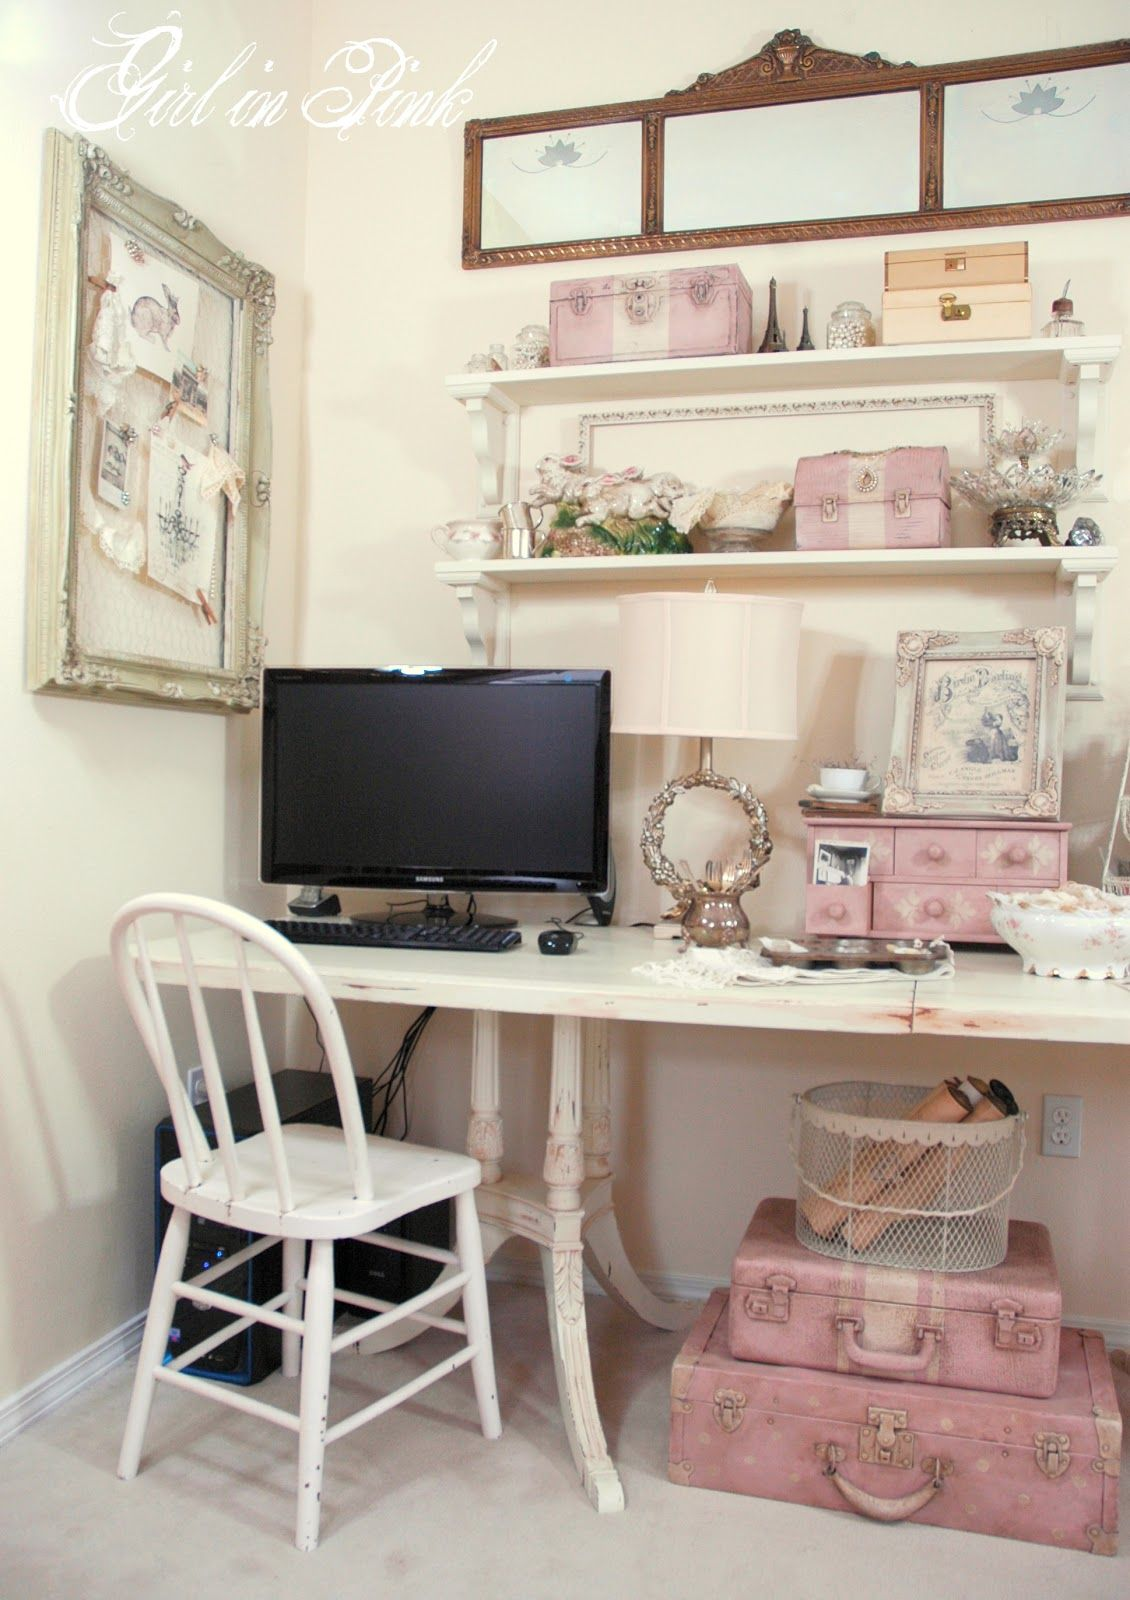 Home Office Ideas On A Budget Decor